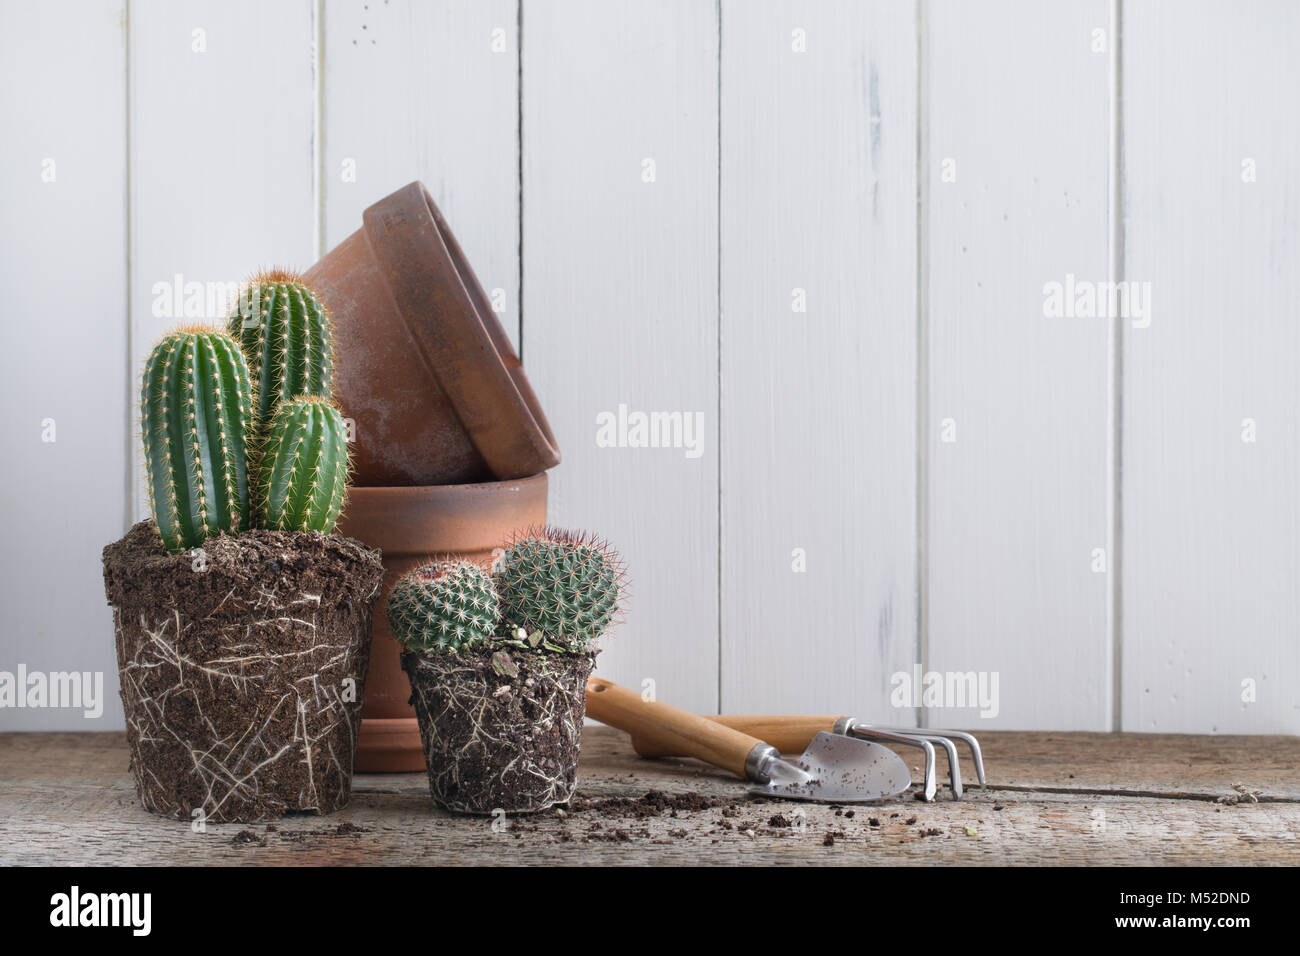 Green Cactus without pot on rustic wooden background. Deadpan style. Realistic. - Stock Image